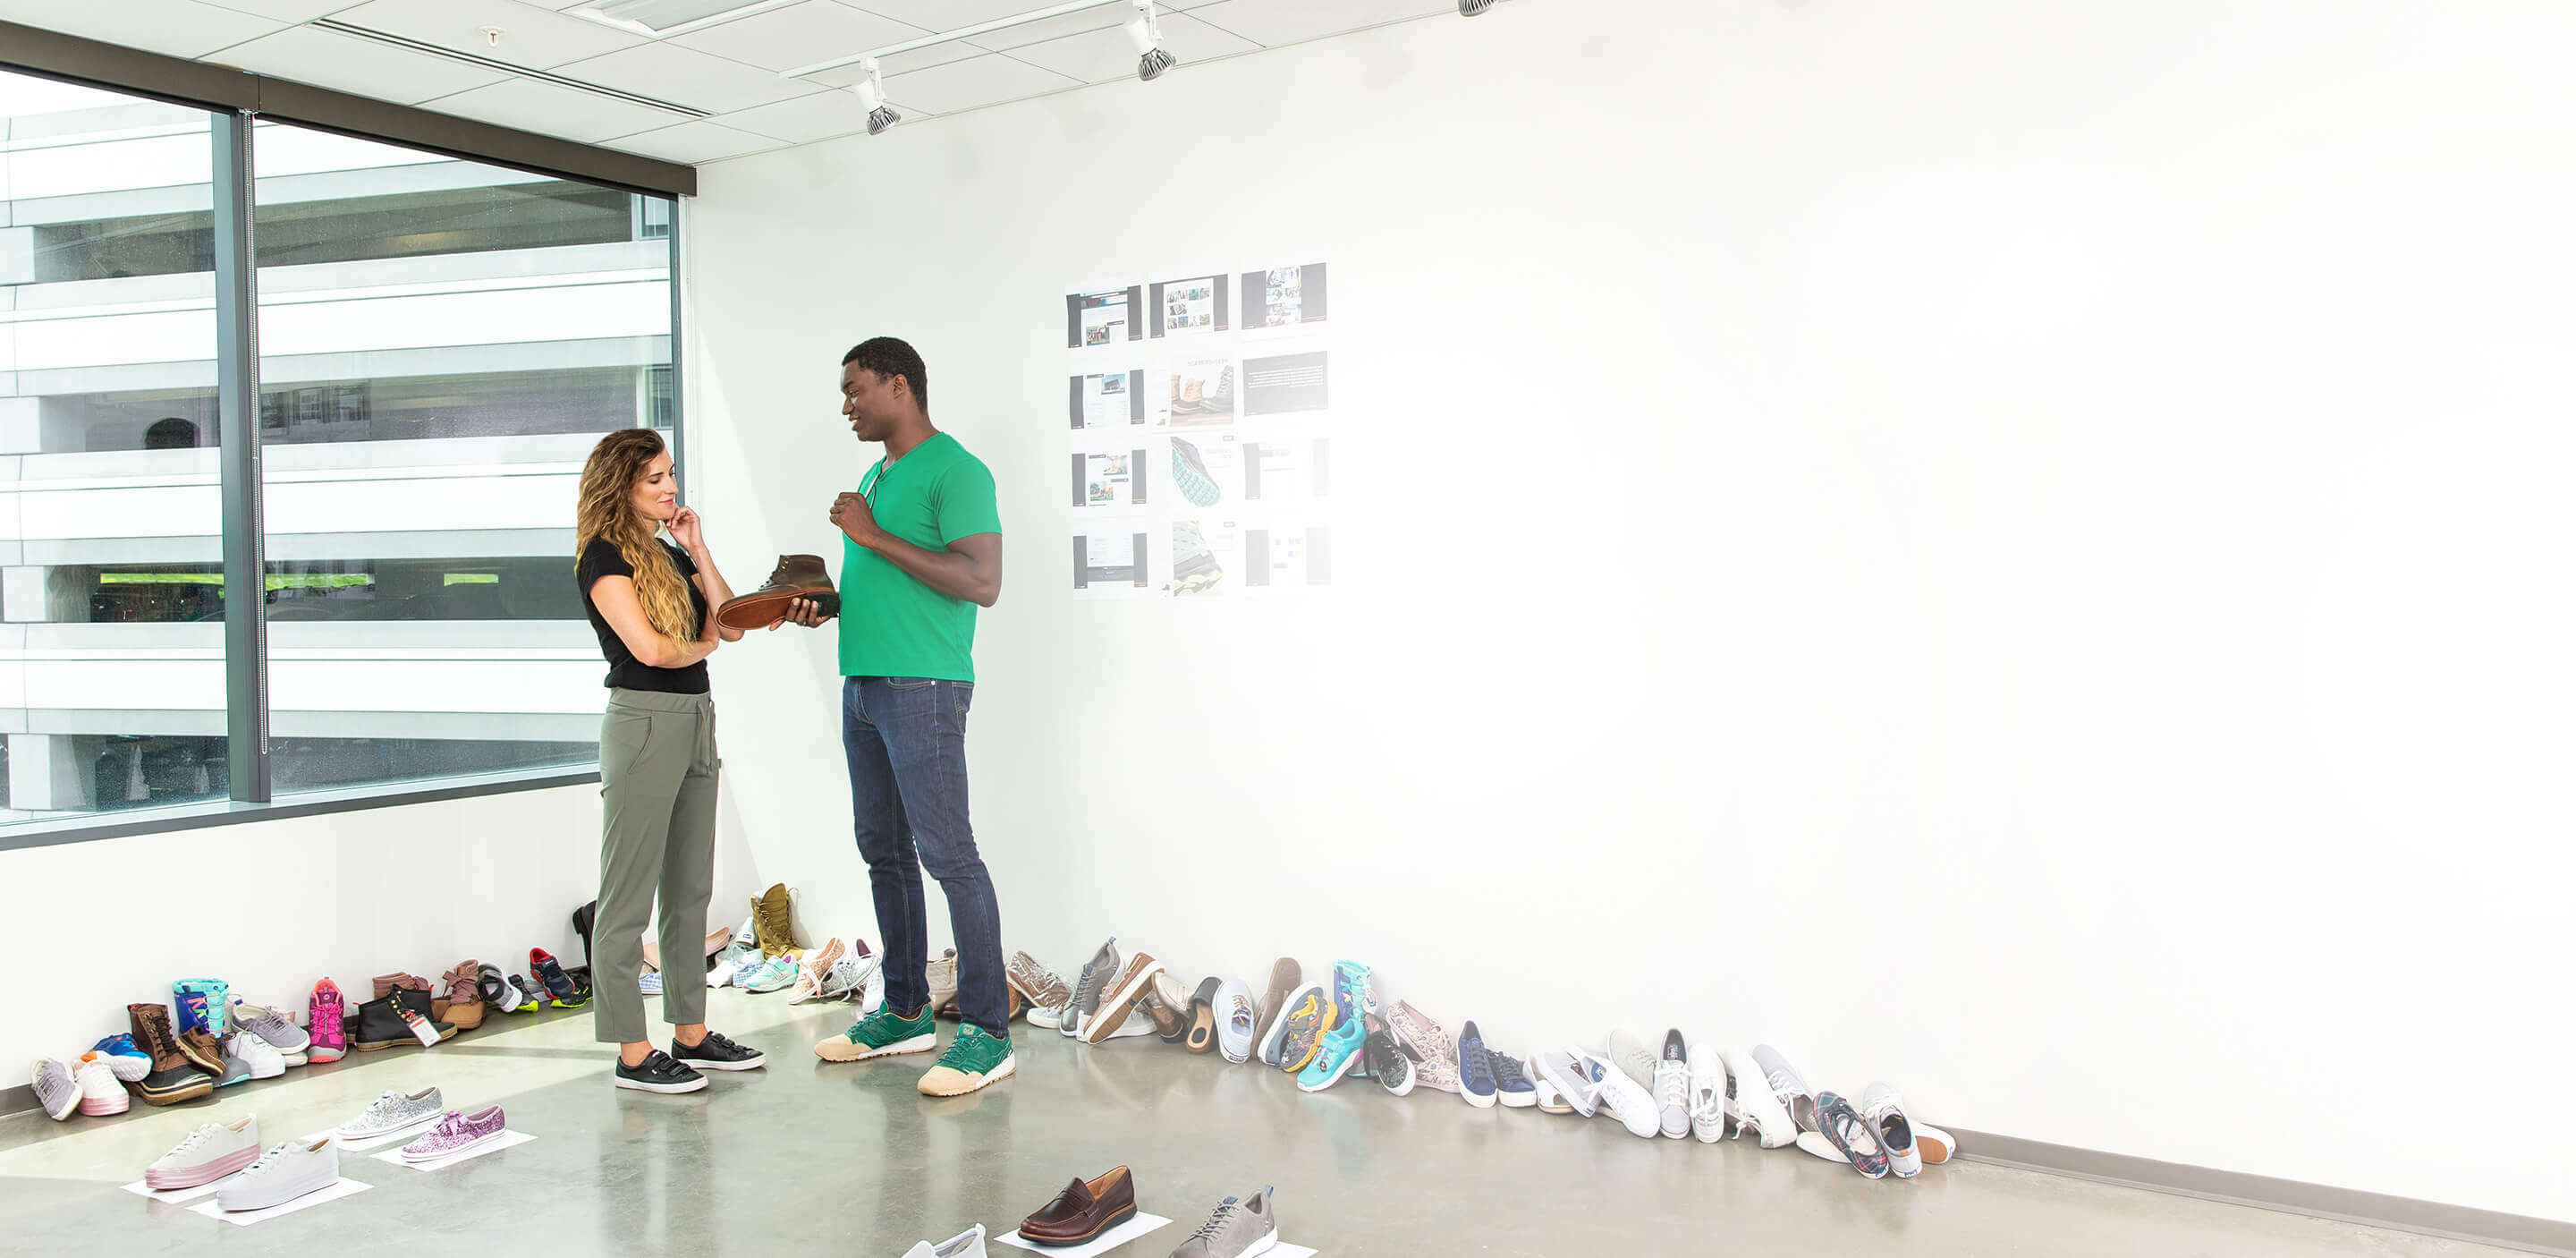 A man holds a boot while talking to a woman, shoes lined up along the walls